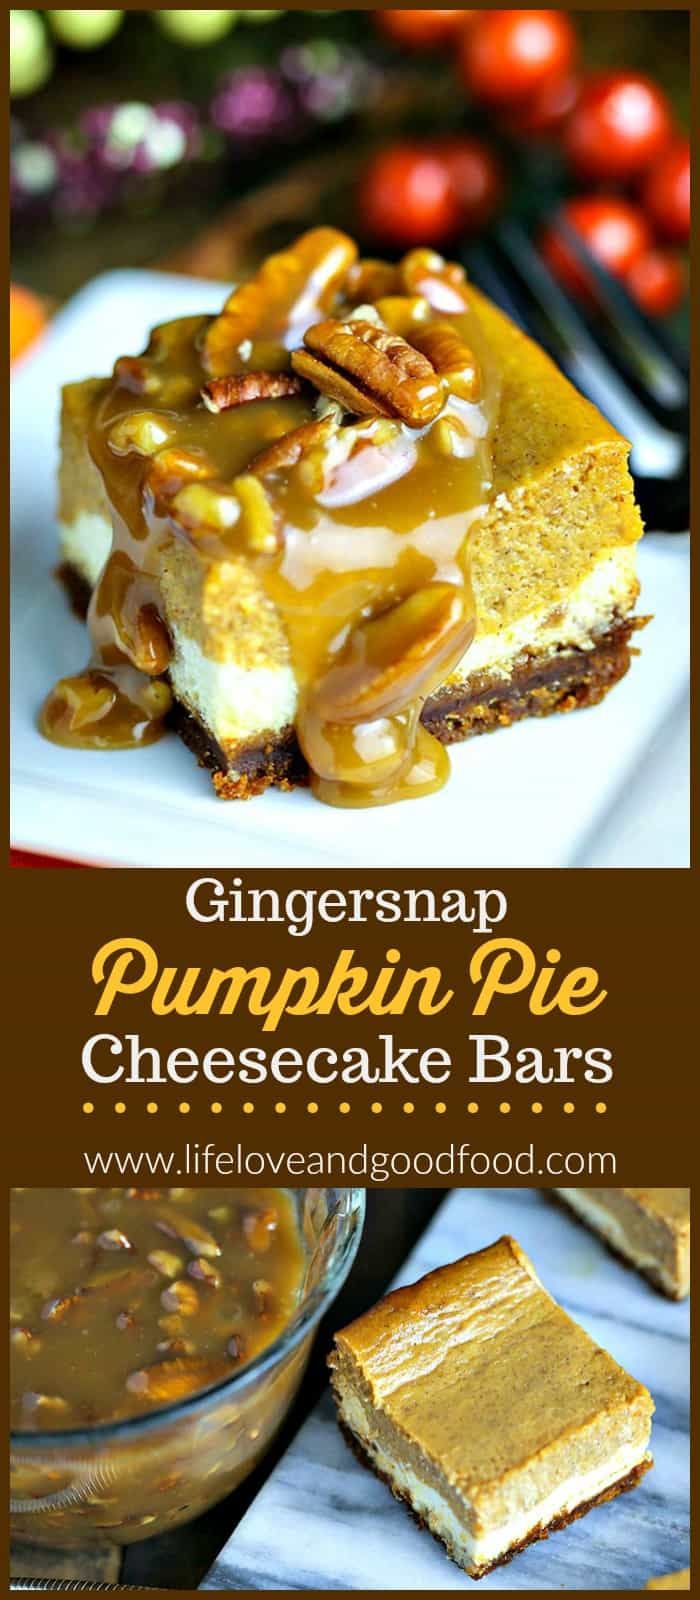 Gingersnap Pumpkin Pie Cheesecake Bars | Life, Love, and Good Food